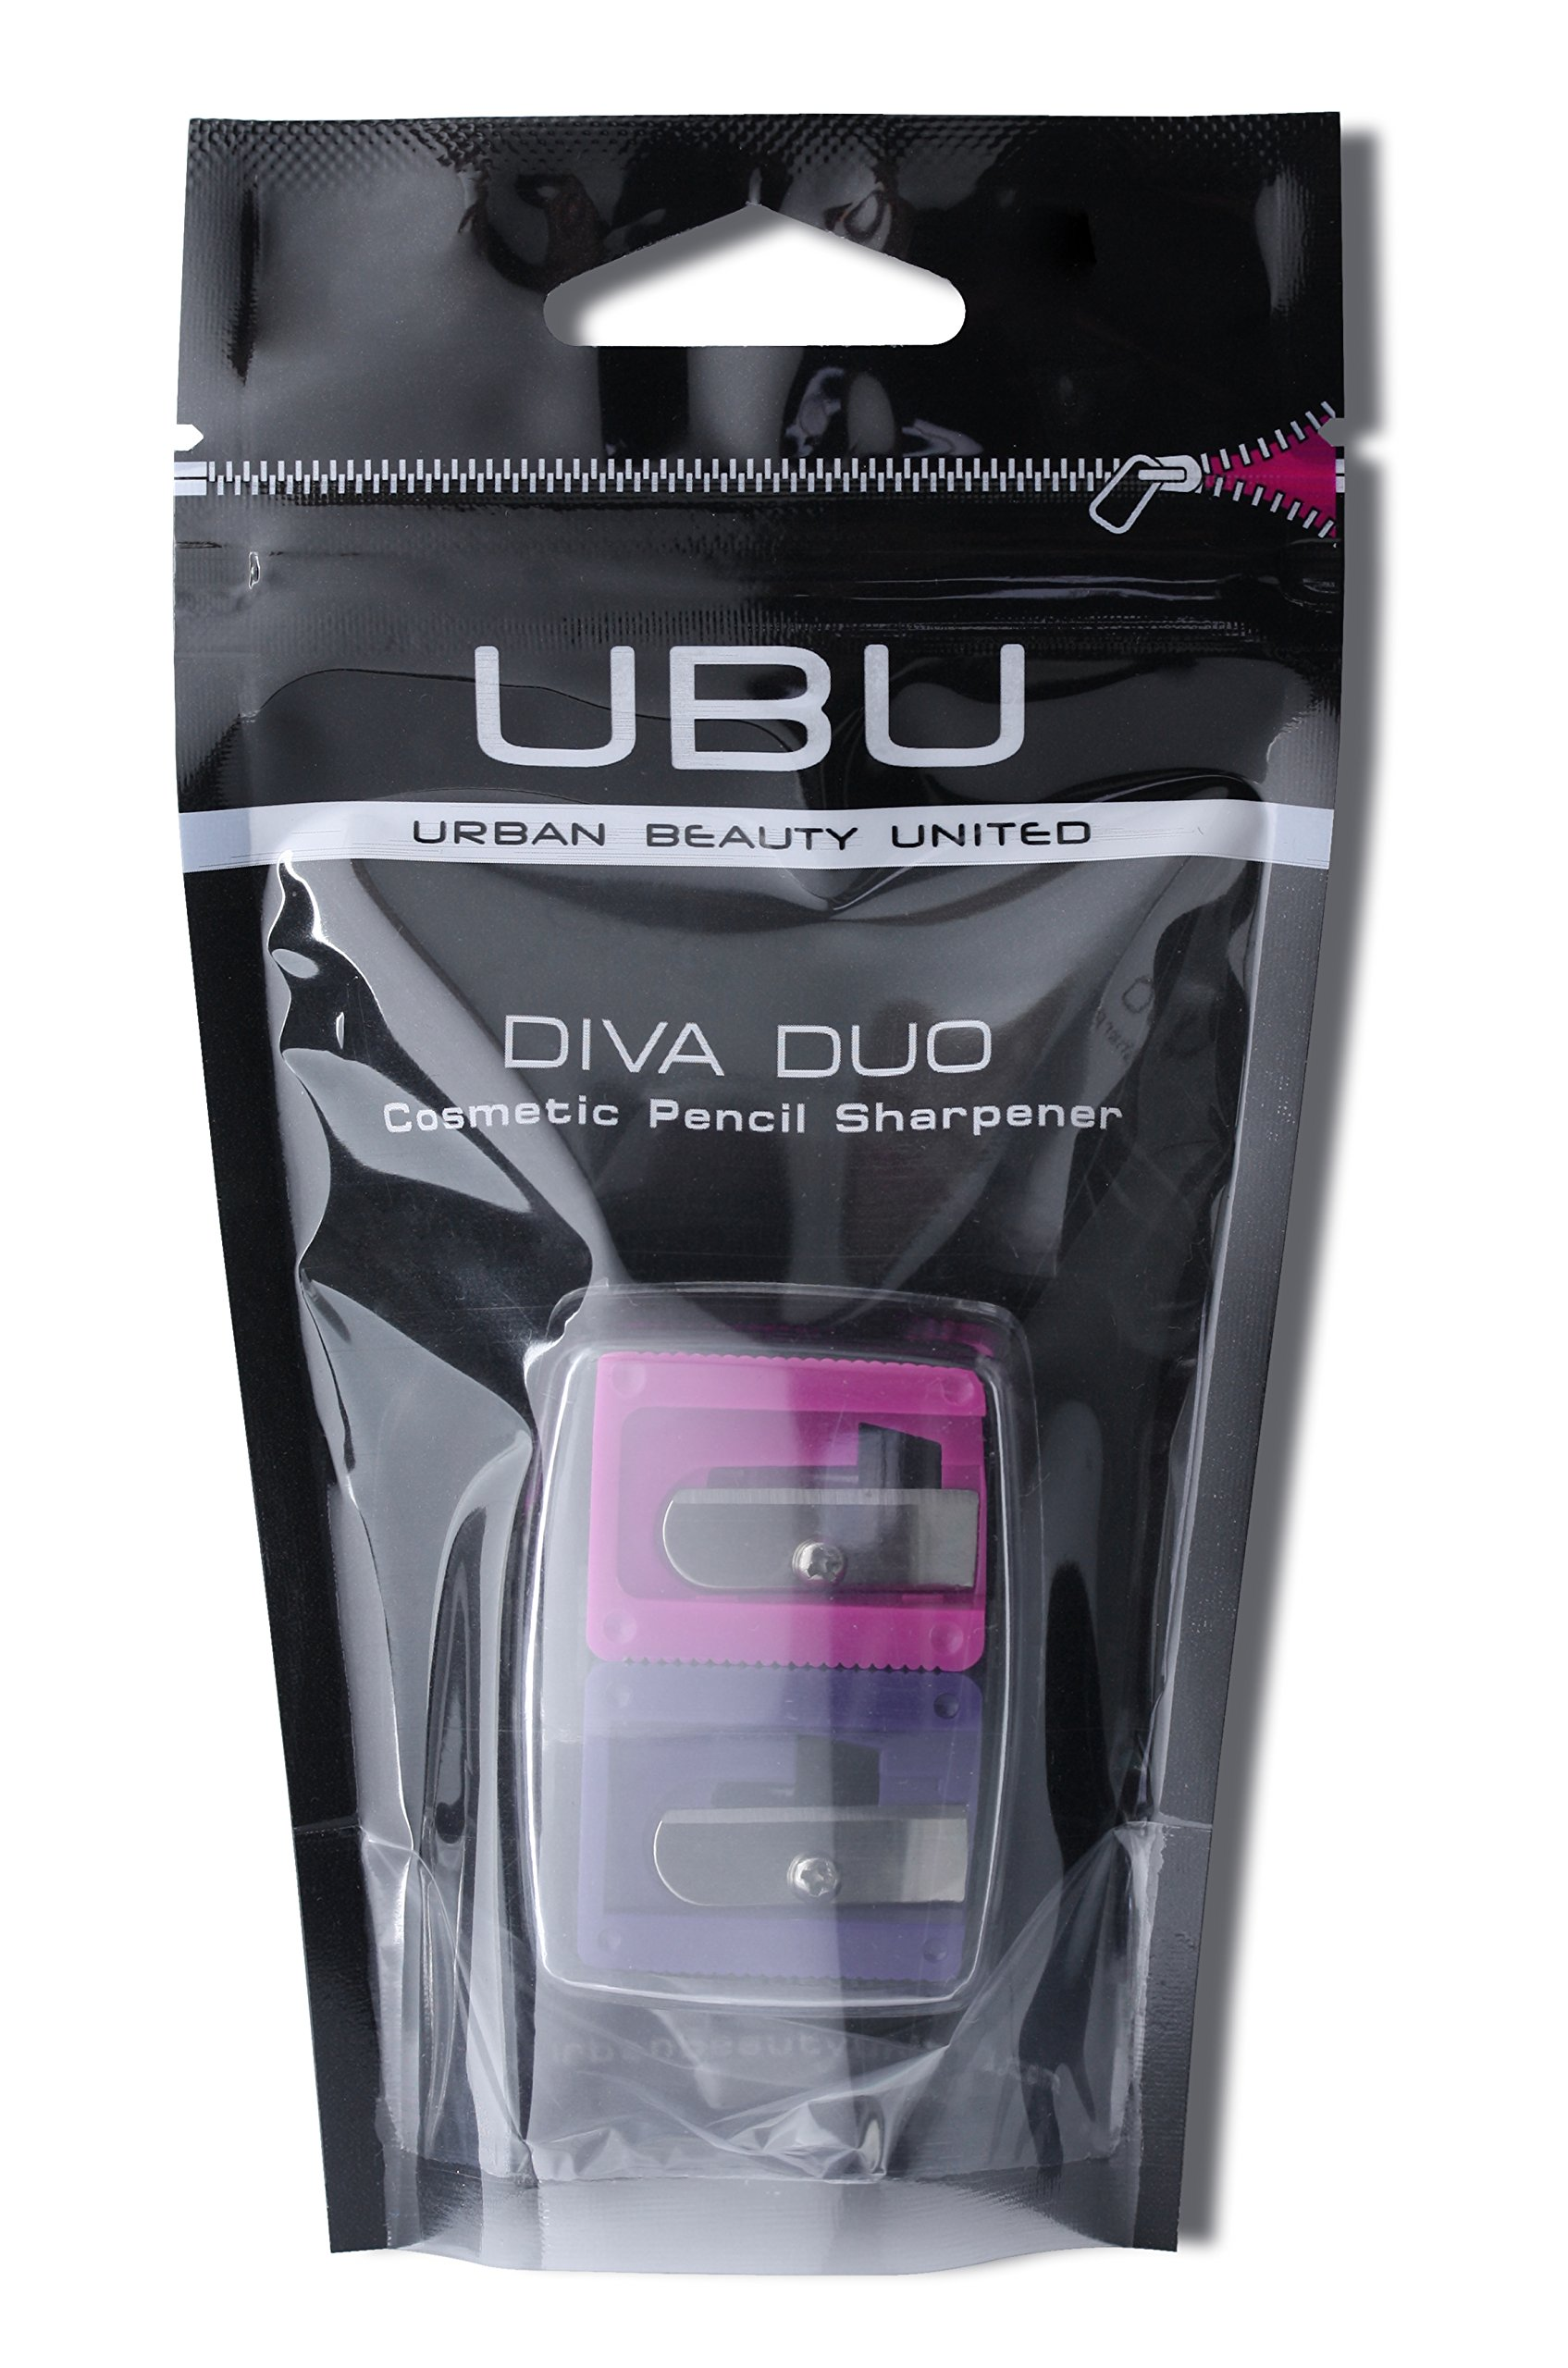 UBU Diva Duo Cosmetic Pencil Sharpener by Urban Beauty United